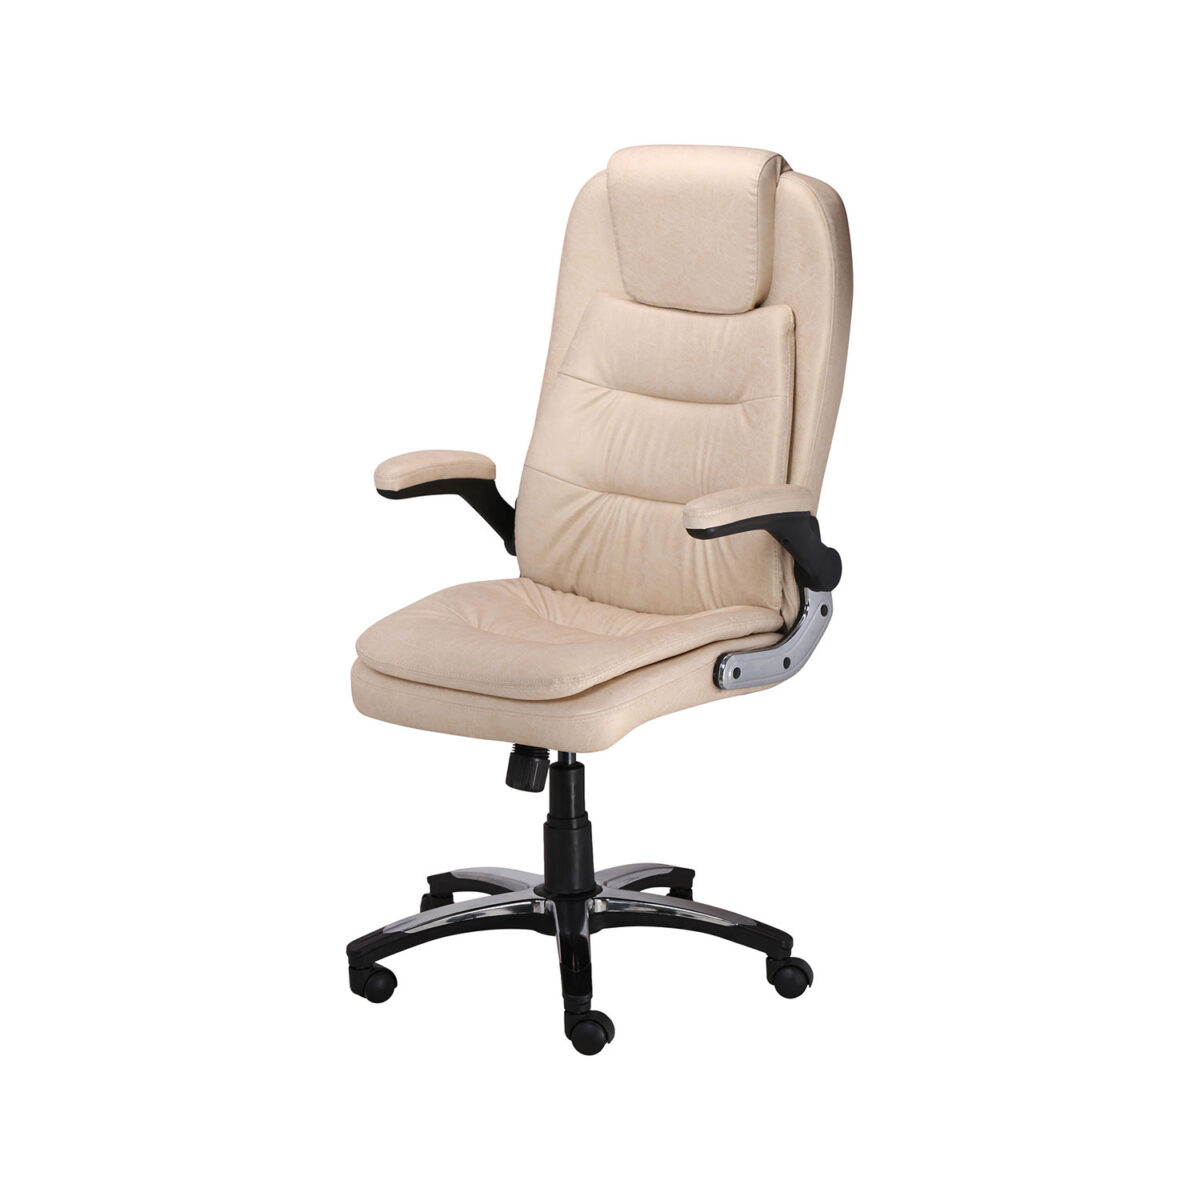 THE LARGAS EXECUTIVE HIGH BACK CHAIR IN DESIGNER CREAM COLOR